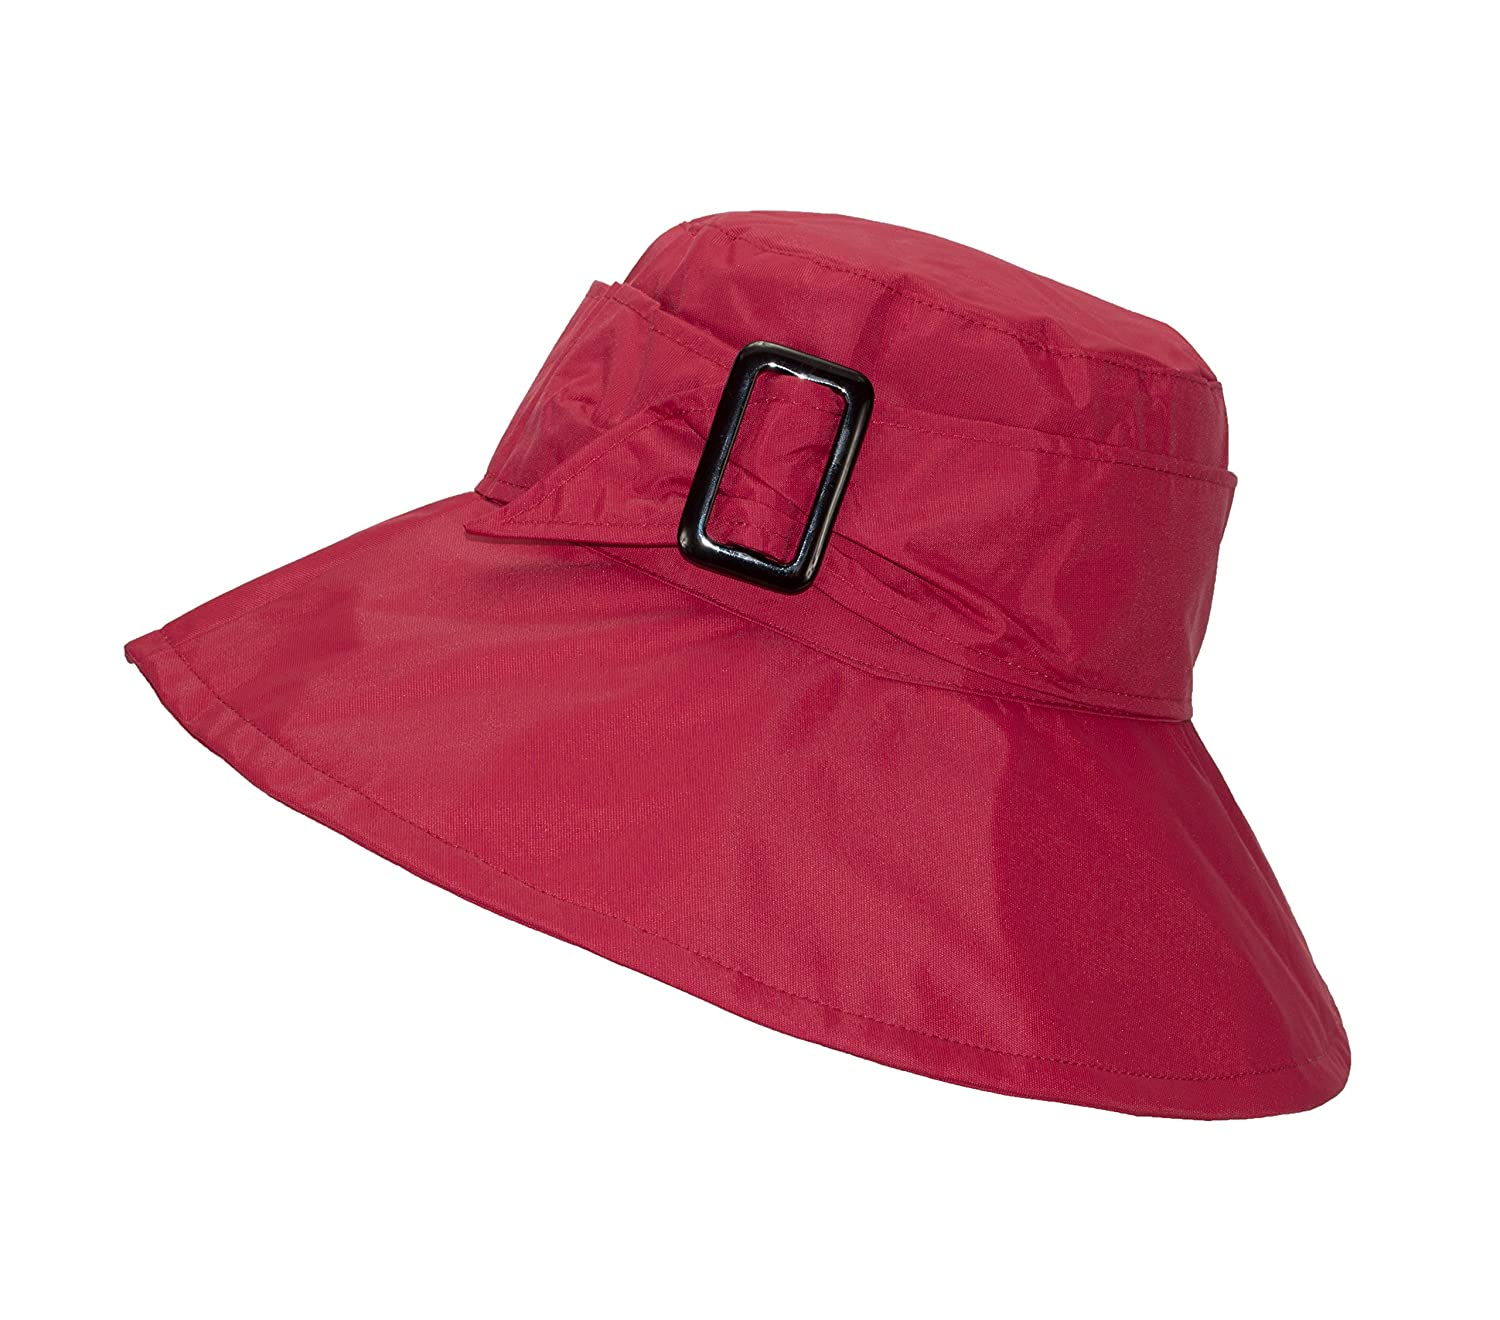 FLH Cute Bucket Rain Hat w/Buckle Accent, 3.5 inch Wide Brim, Roll-Up Packable 0306